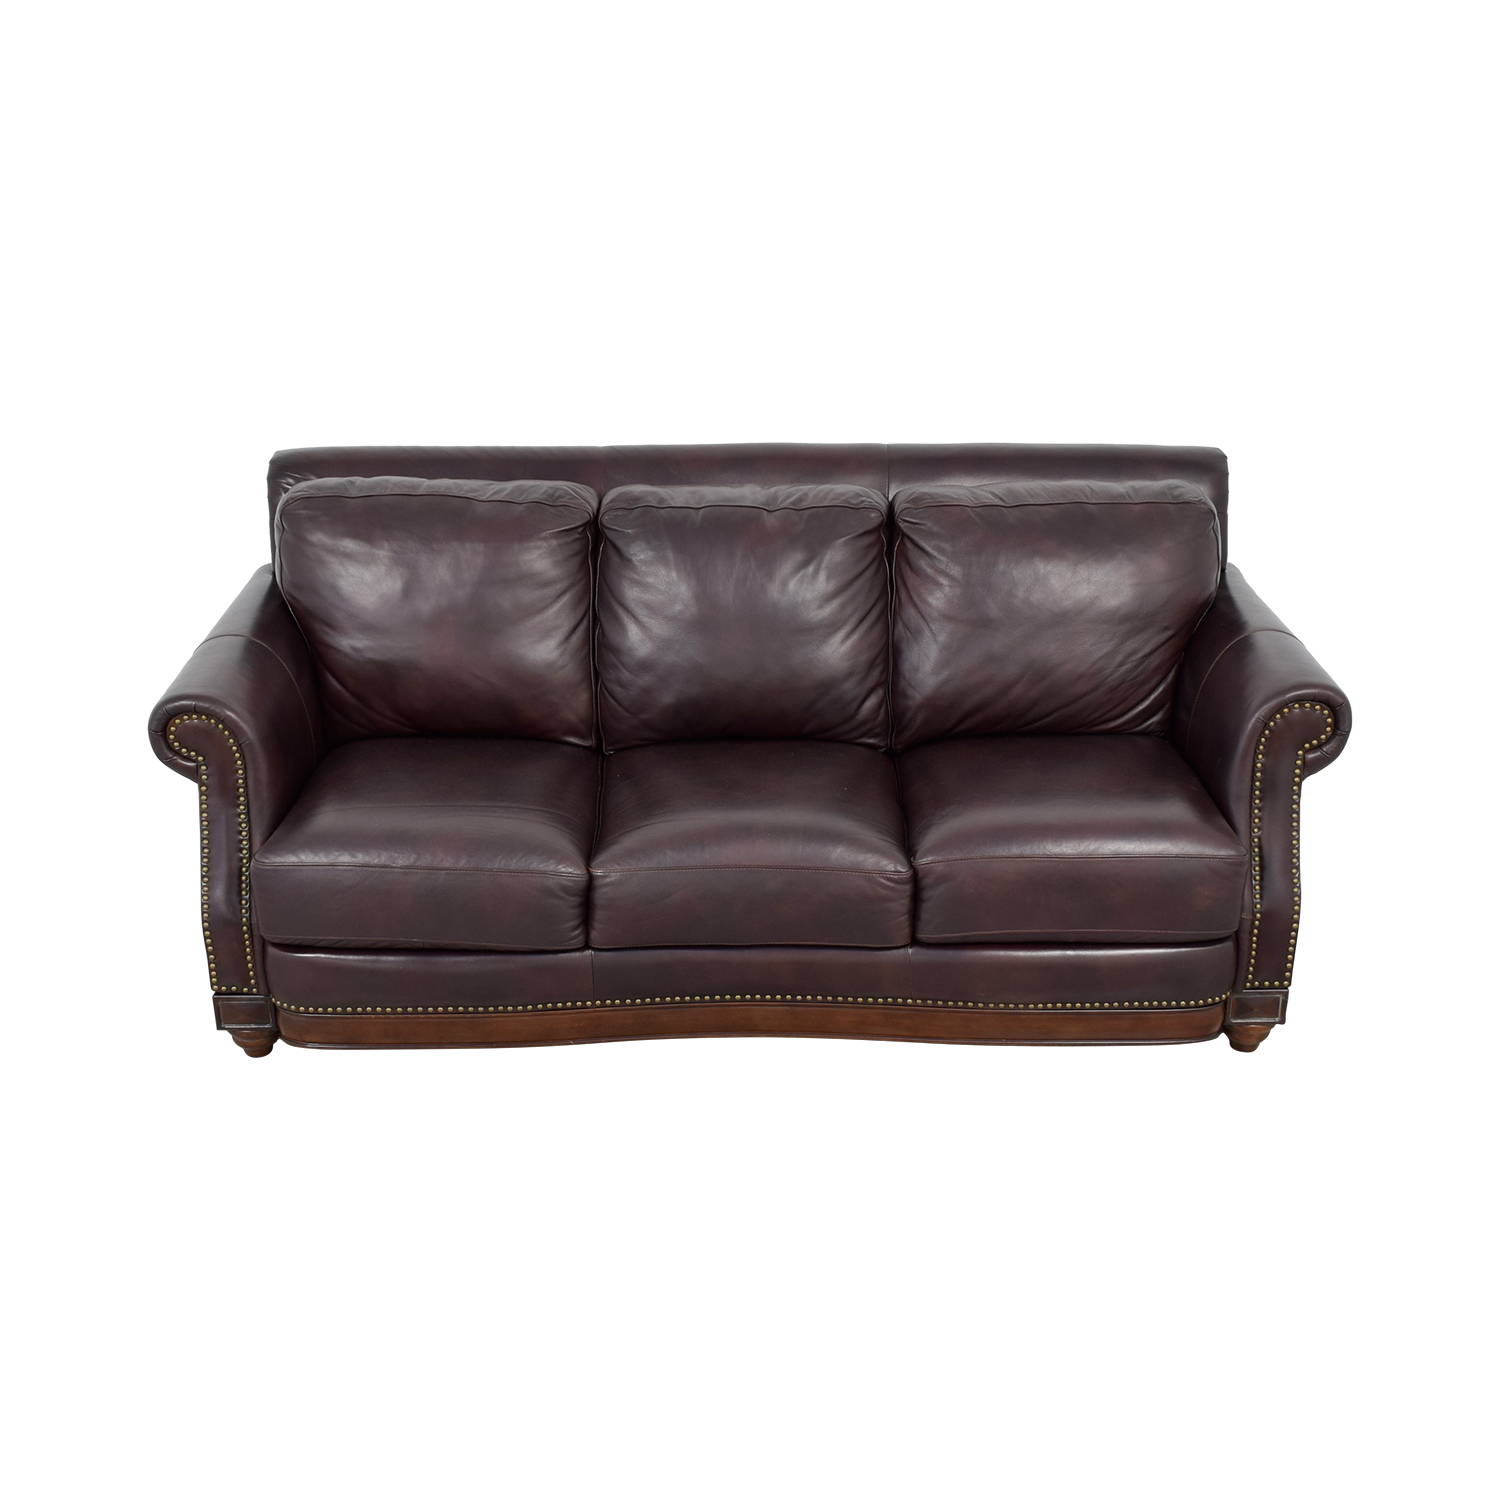 buy Raymour & Flanigan Raymour & Flanigan Brown Leather Nailhead Sofa online